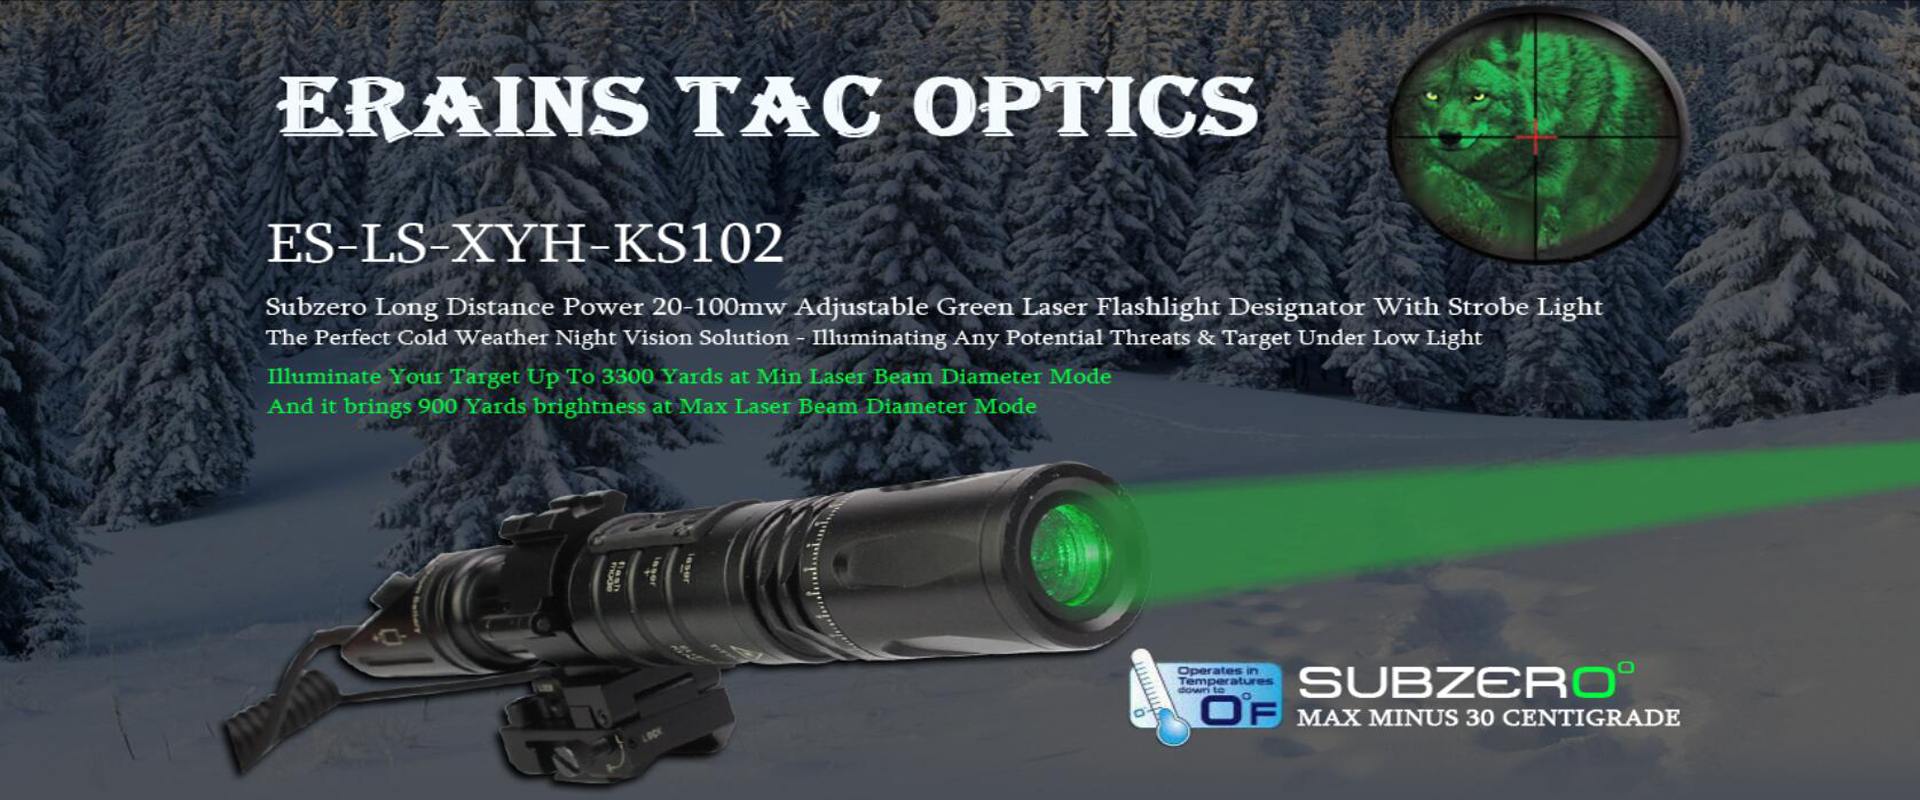 All the civilian grade and military or tactical purpose green laser designators are available.